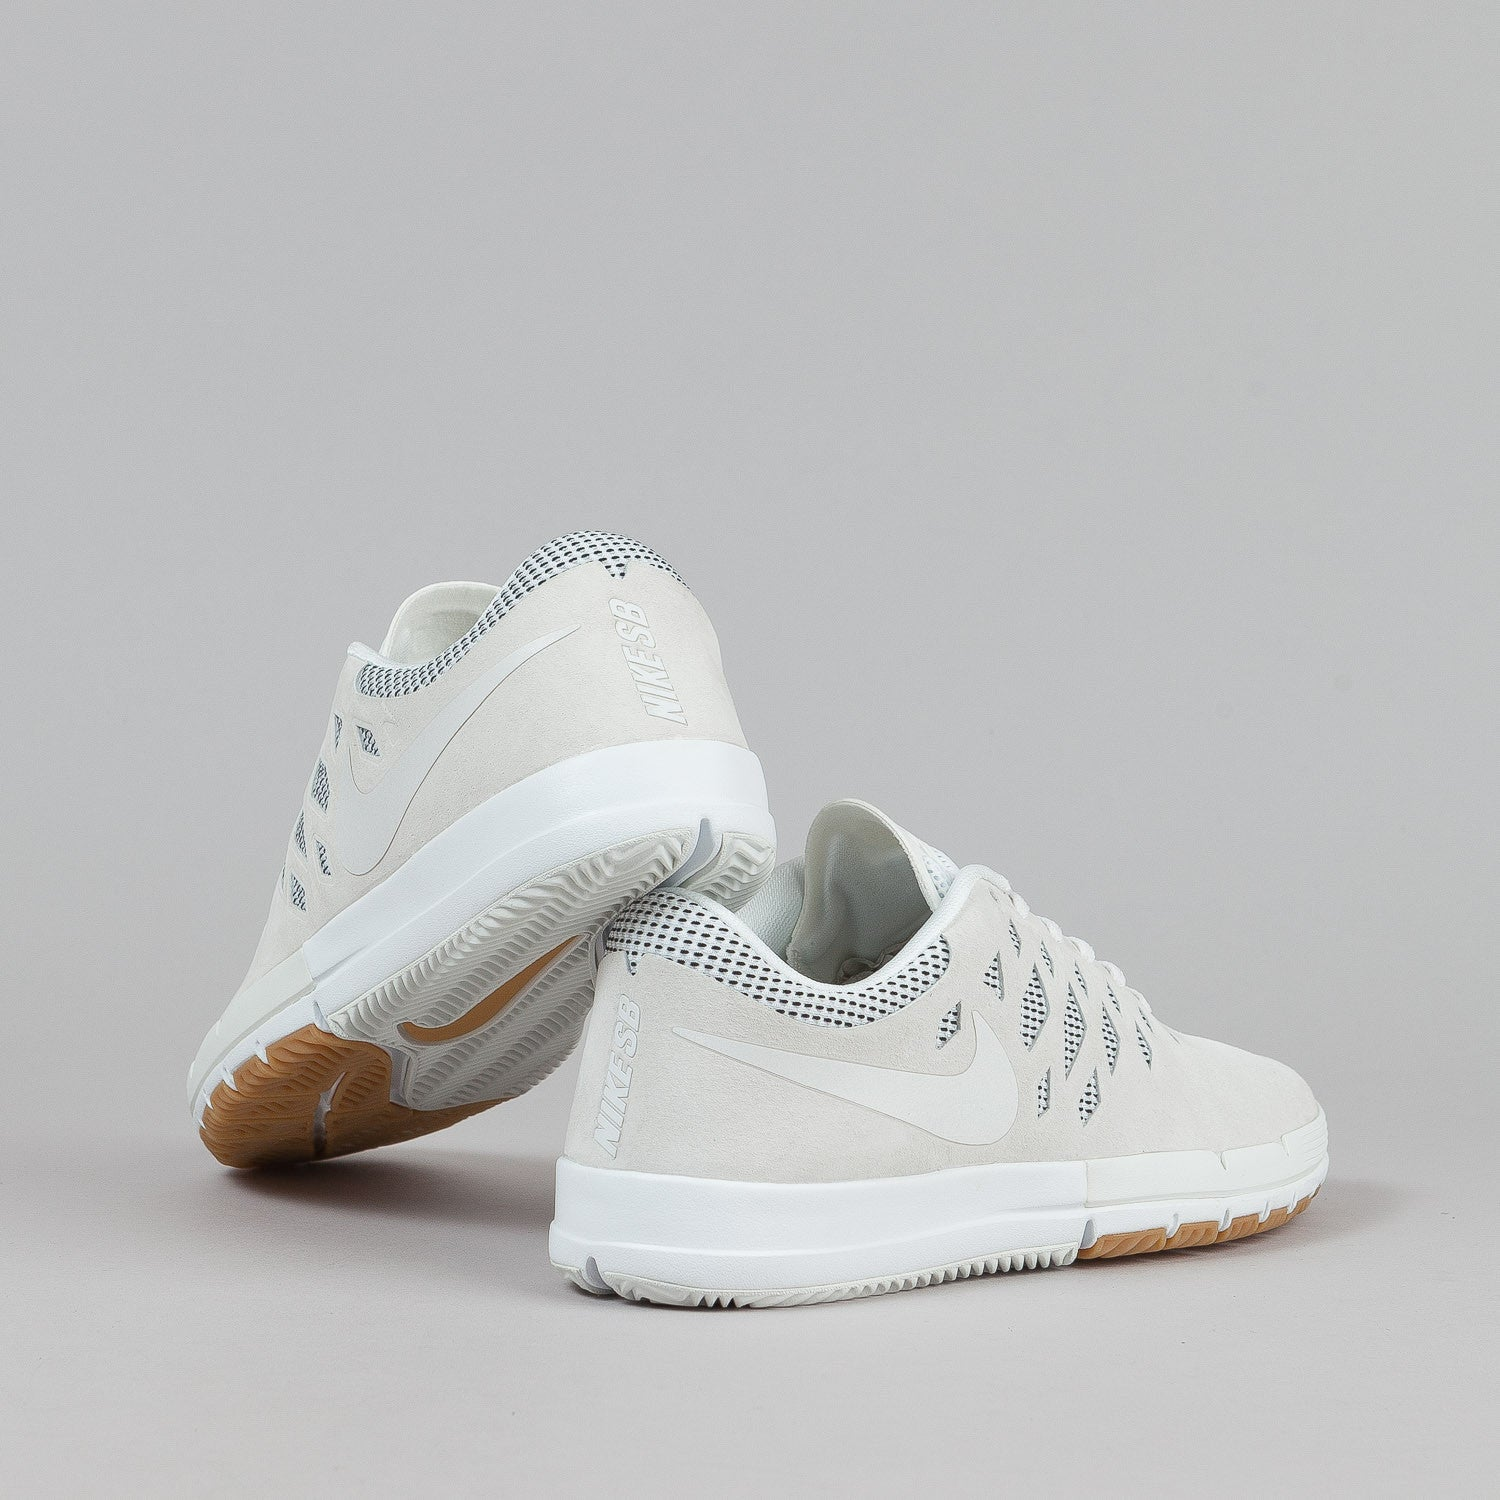 Nike SB Free Shoes Premium - Summit White / Gum Light Brown